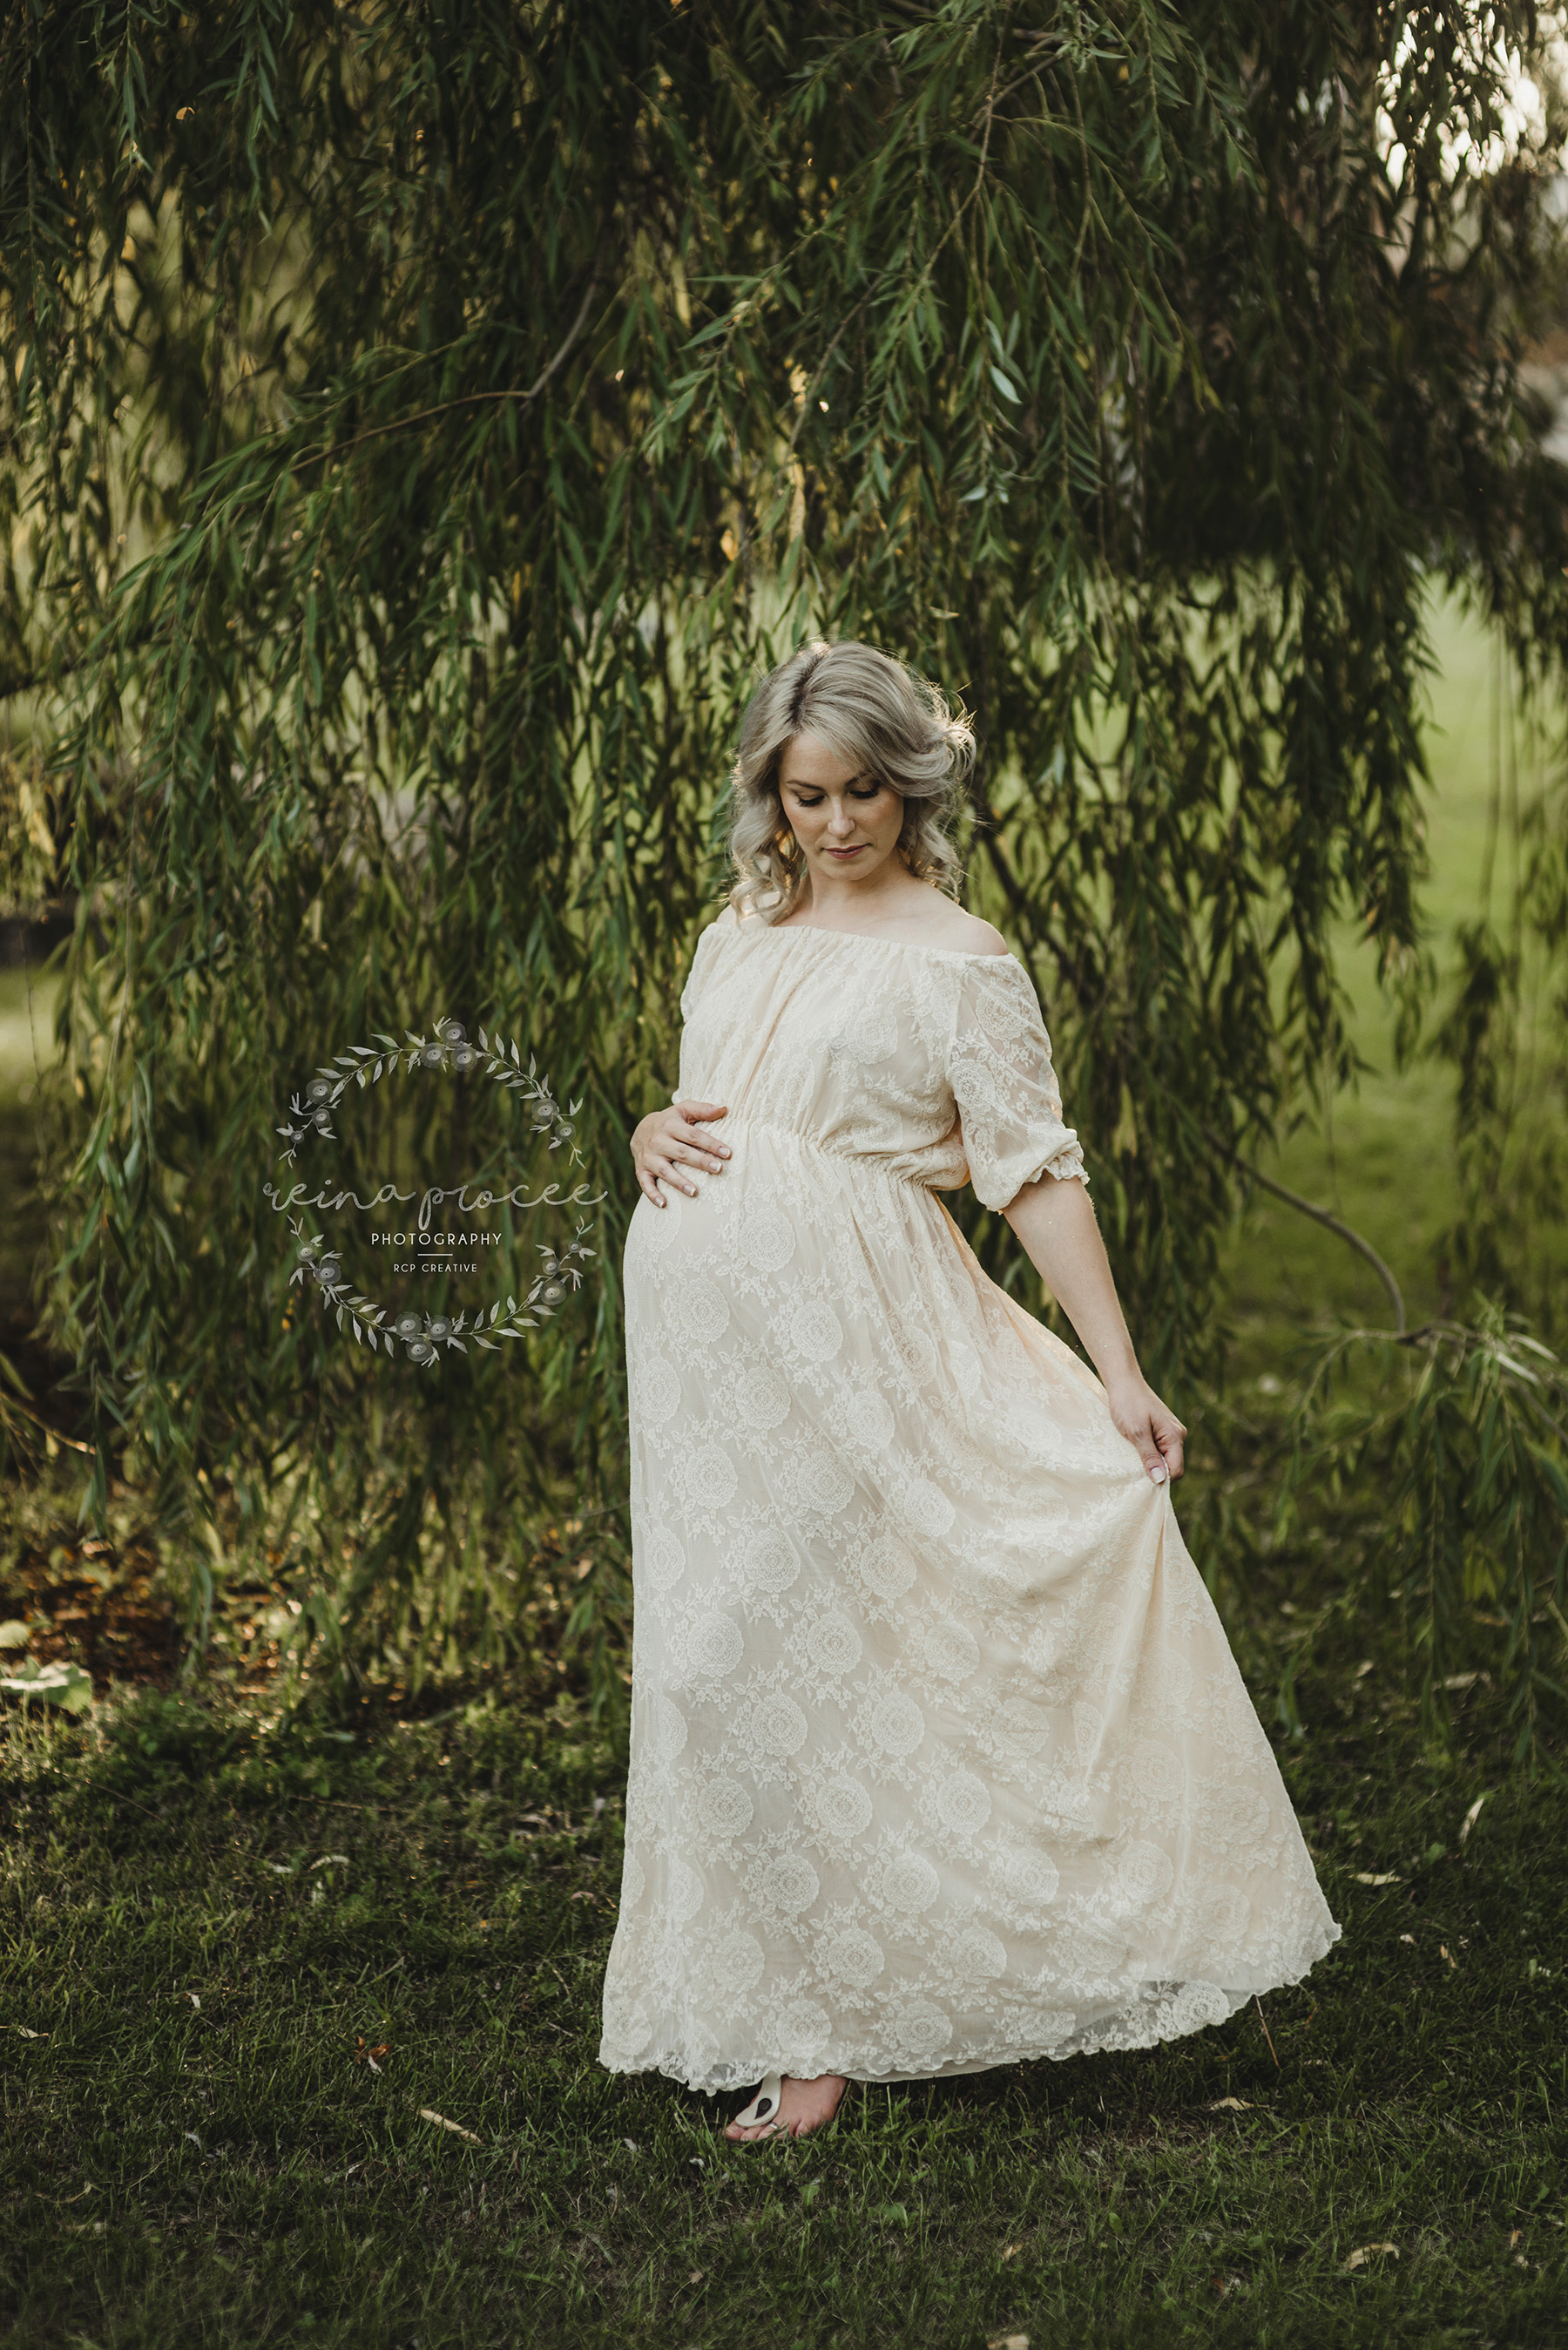 Maternity session under willow tree